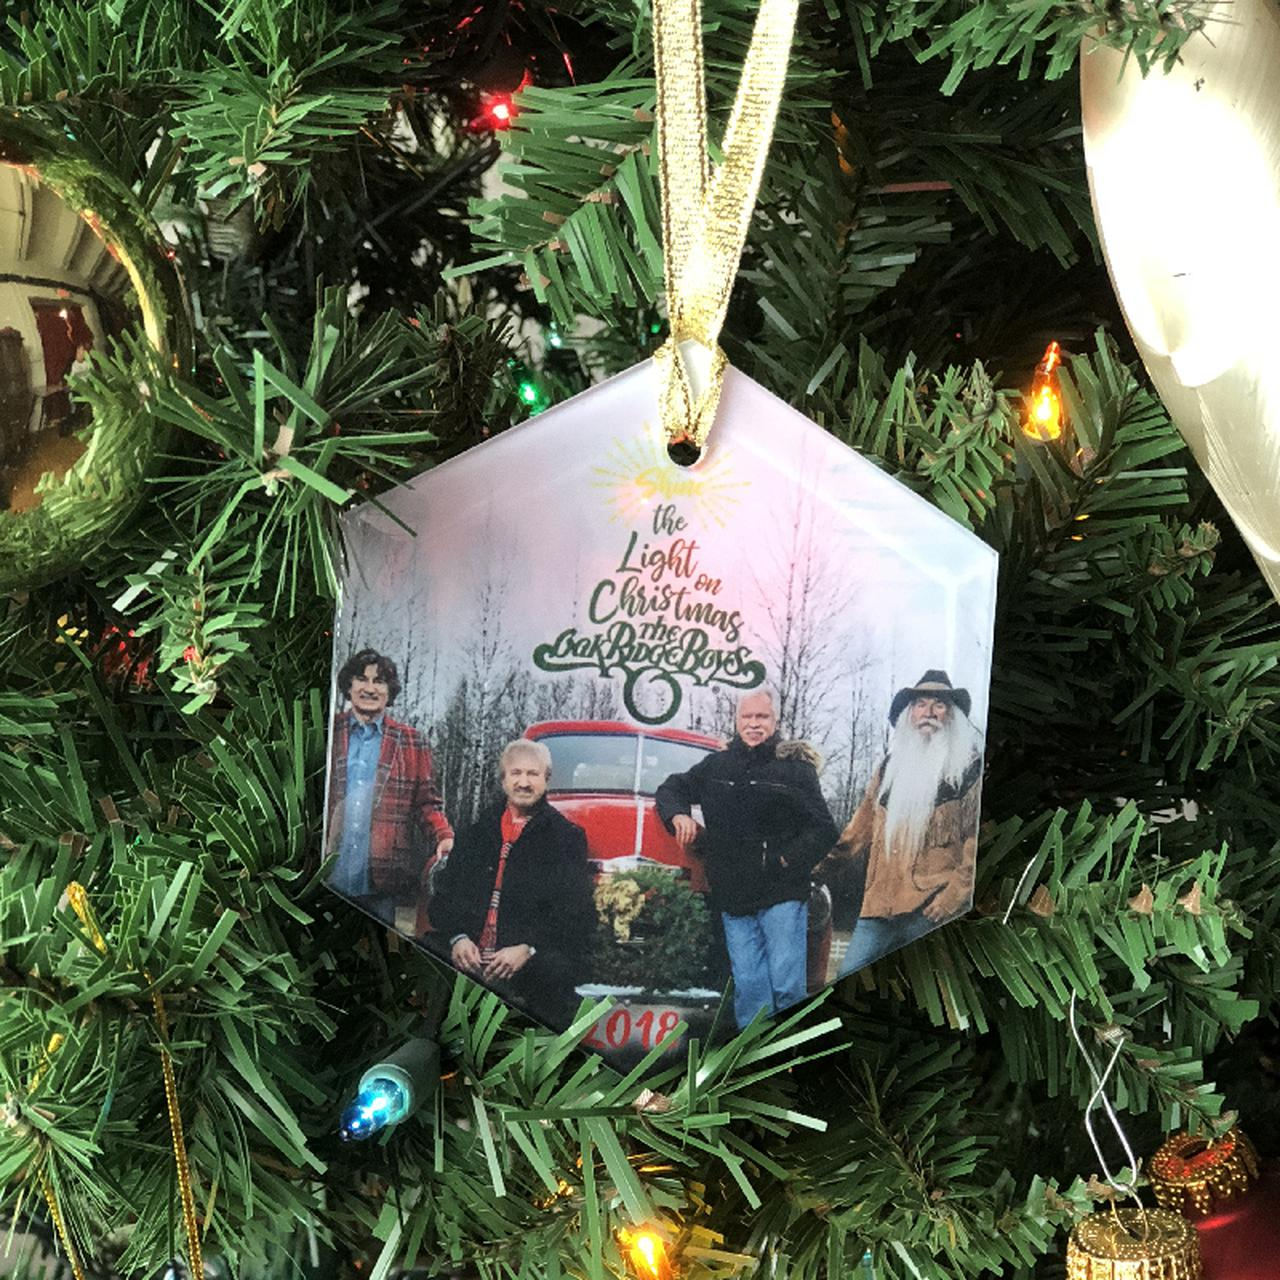 Oak Ridge Boys 2018 Christmas Ornament